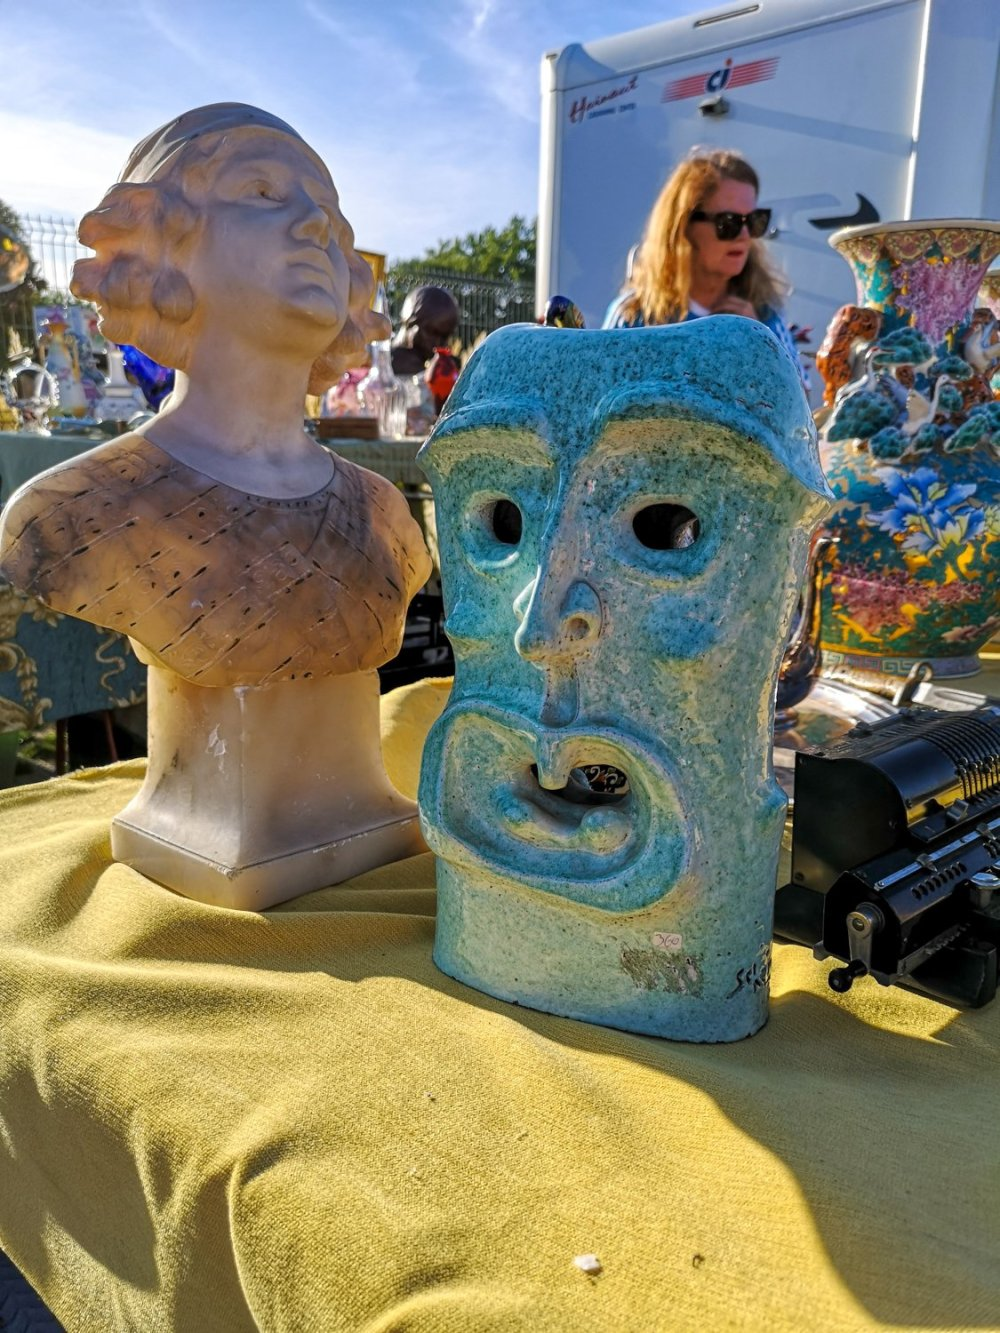 Ceramic statue at the braderie de lille